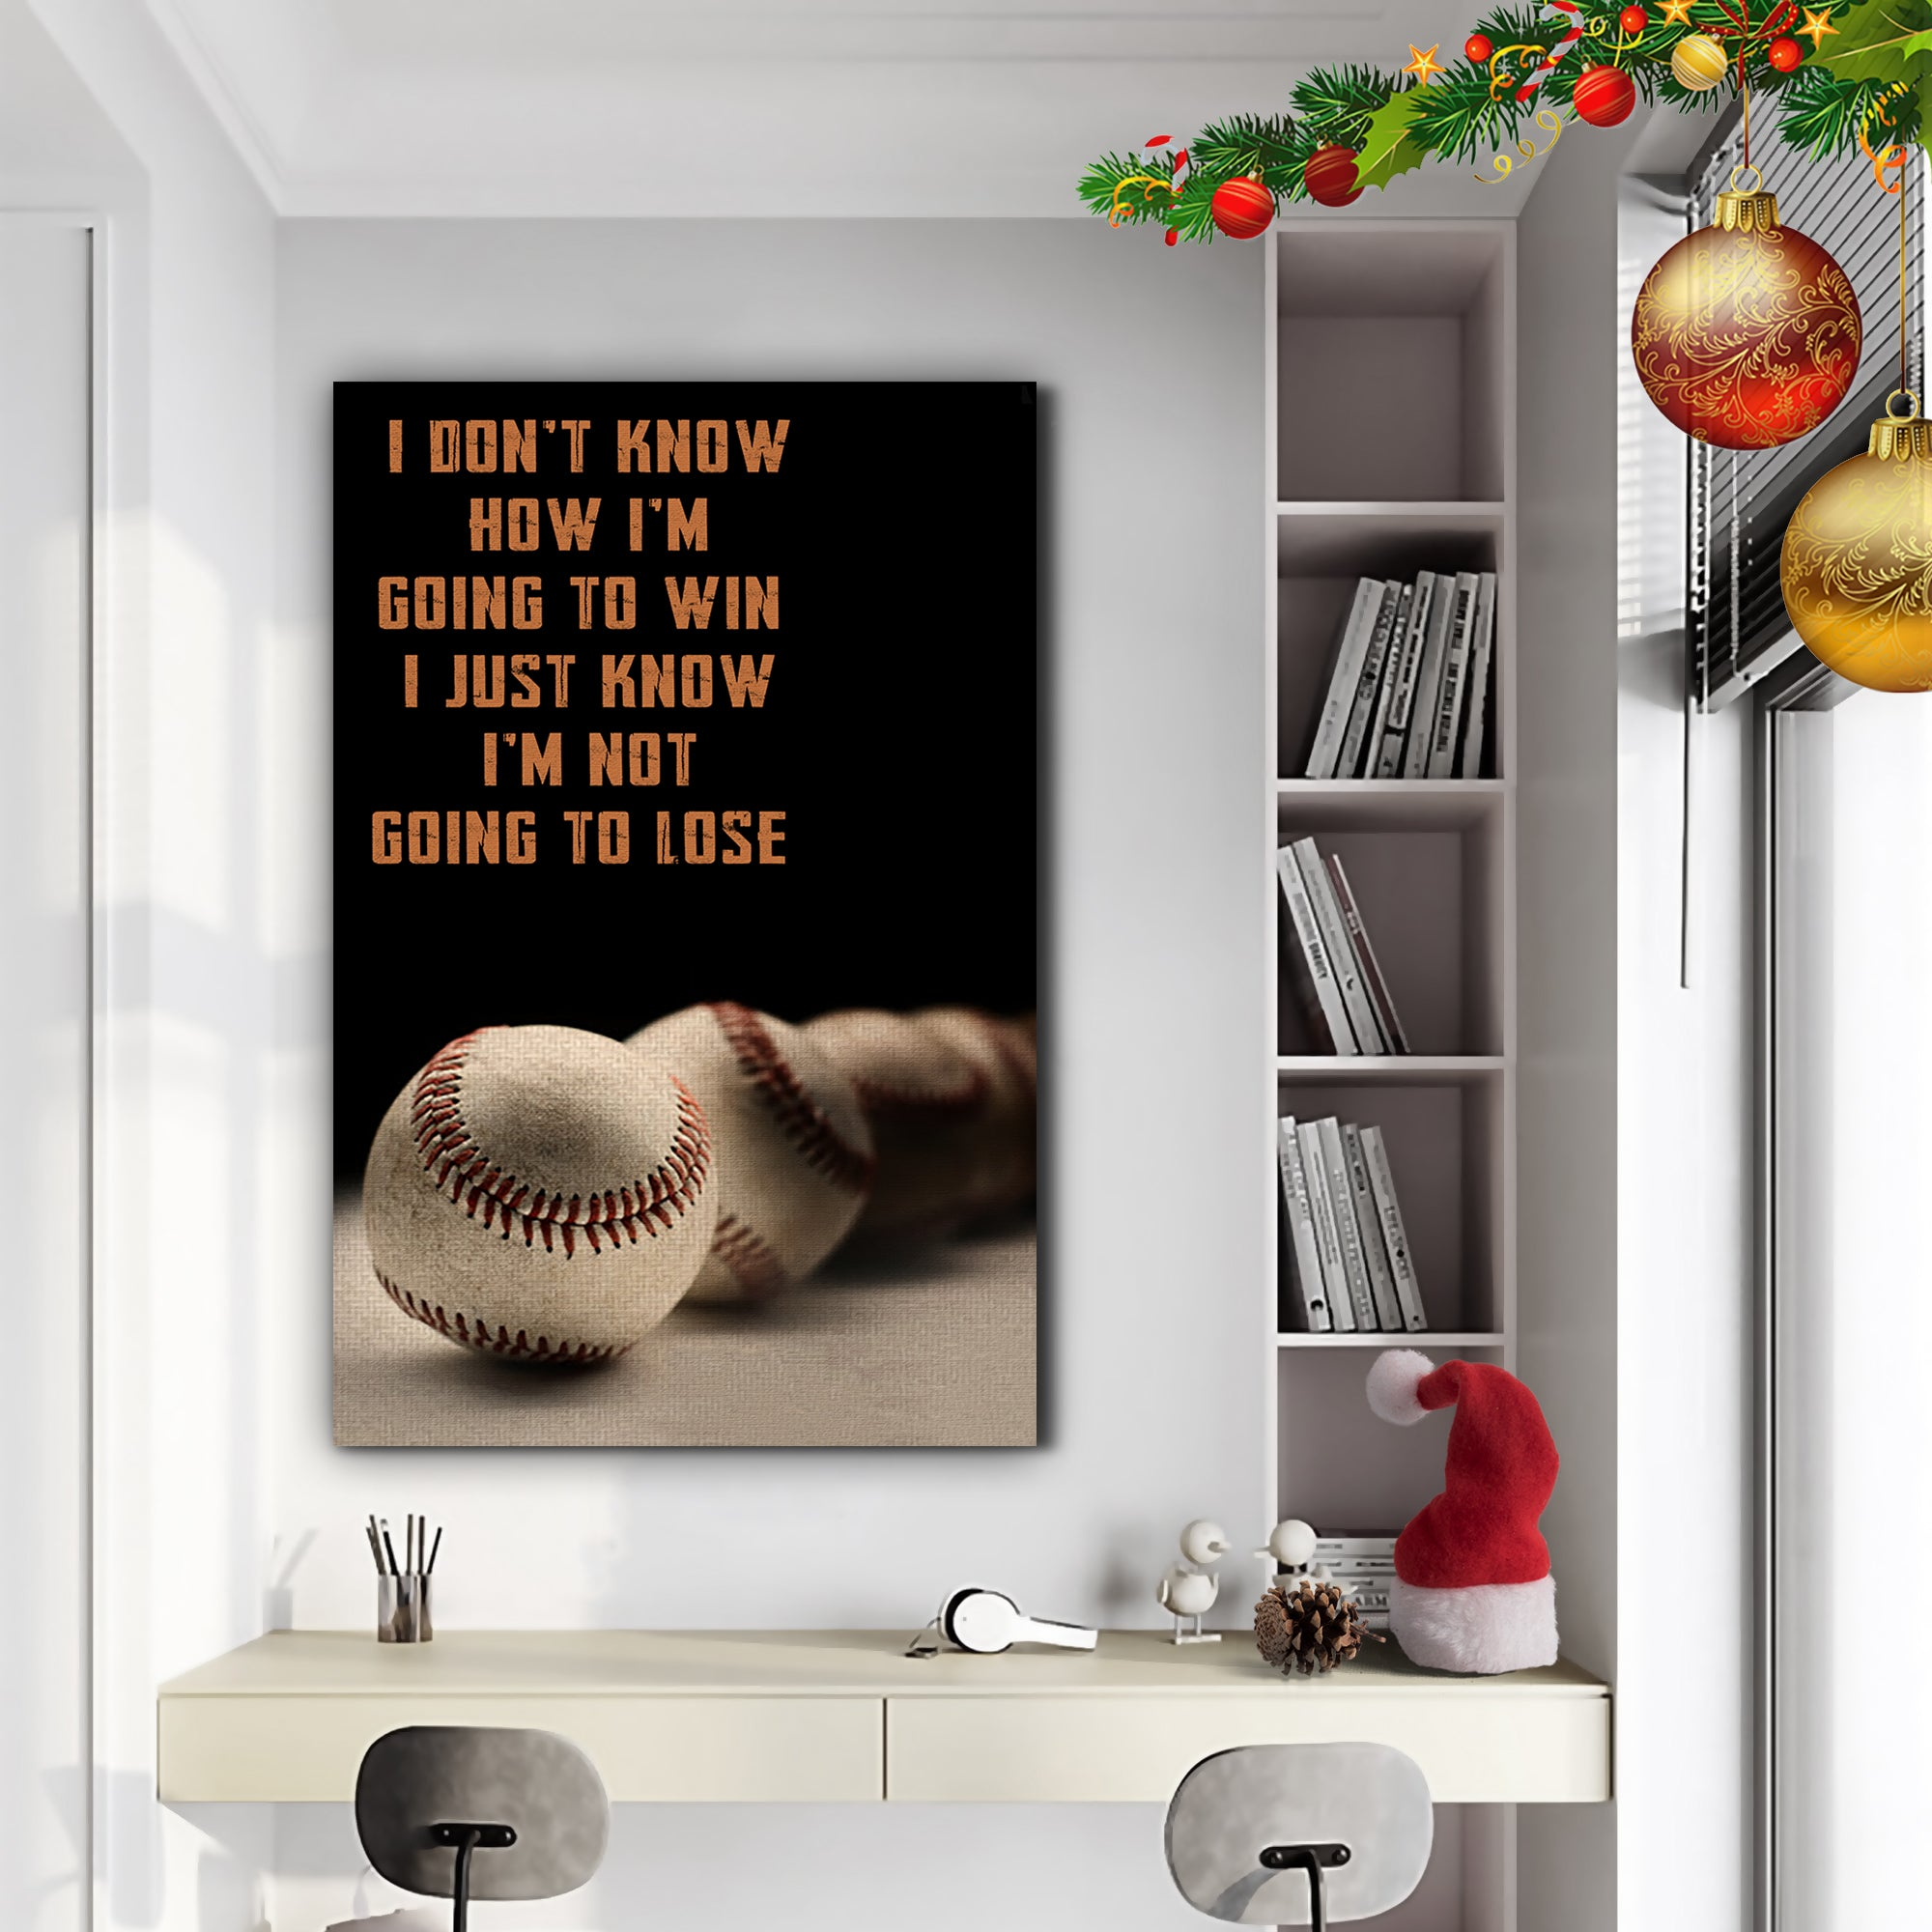 (LP324) Customizable Baseball Poster, canvas - I'm not going to lose - FREE SHIPPING ON ORDERS OVER $75